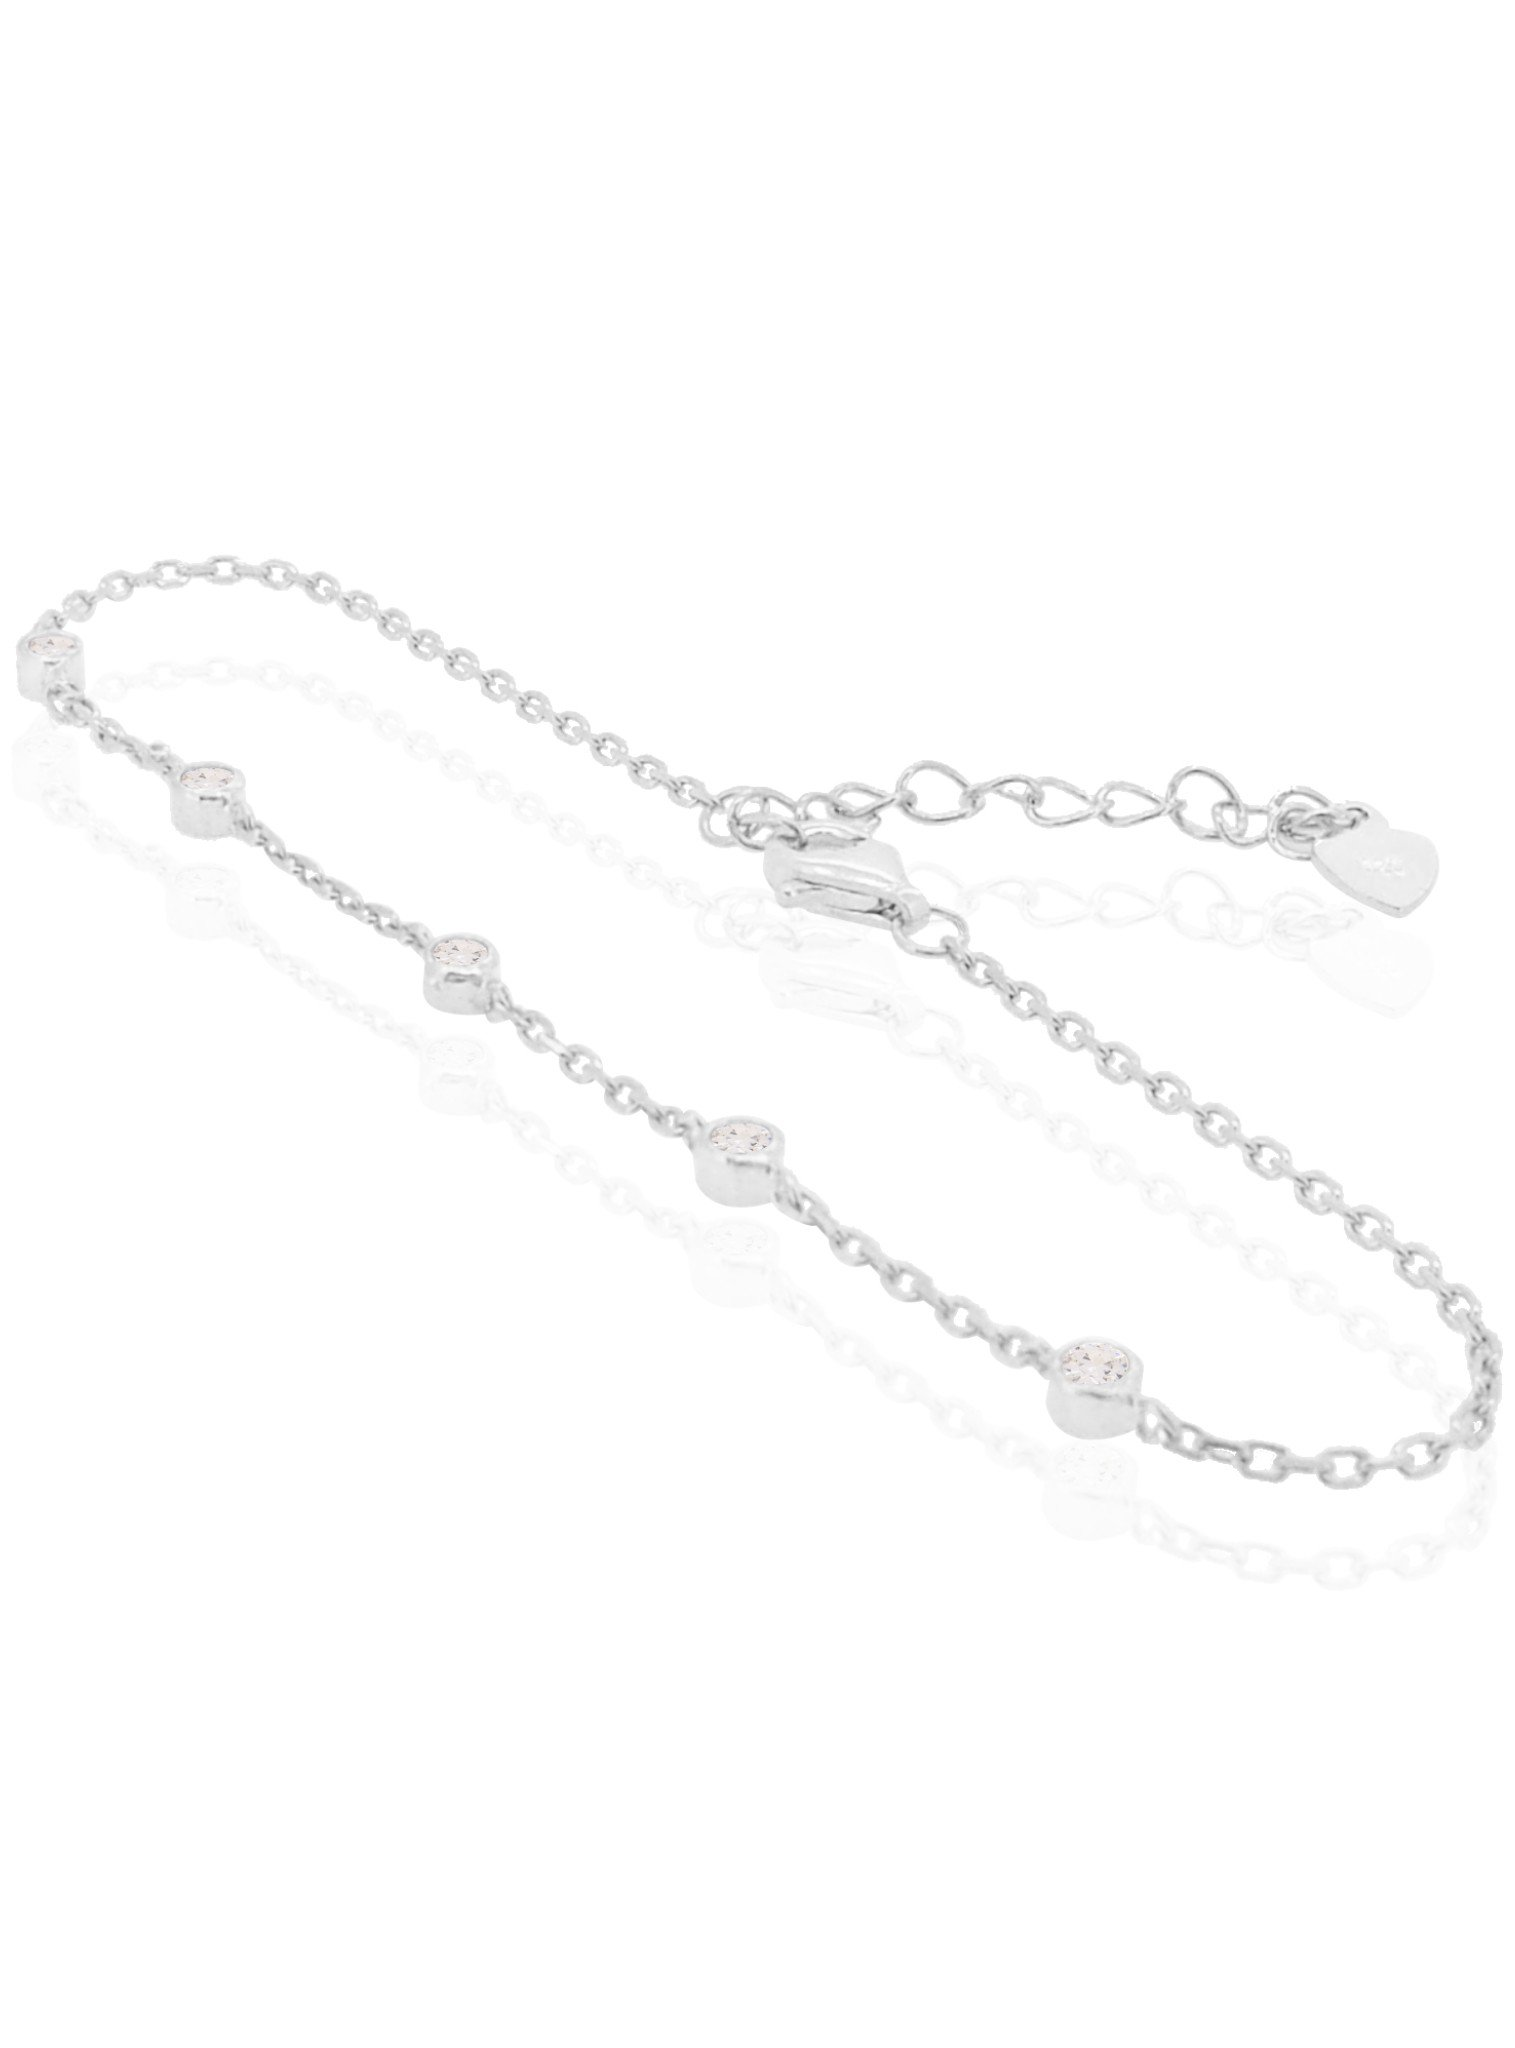 Arya Scattered CZ Bracelet in Sterling Silver